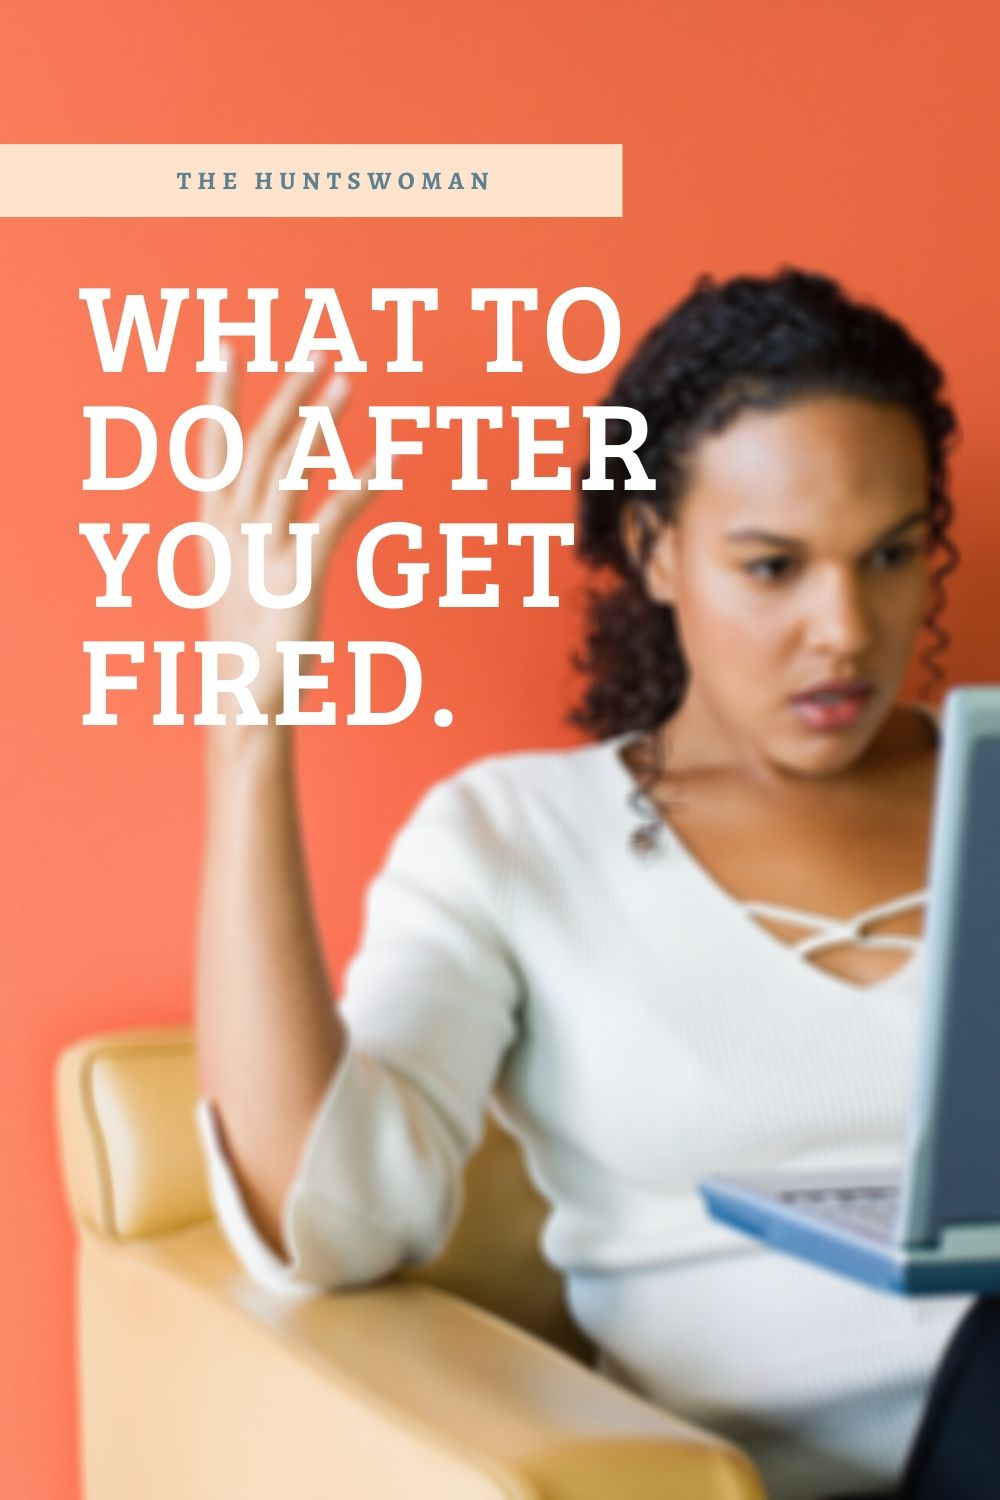 Just got fired? Here's what to do next